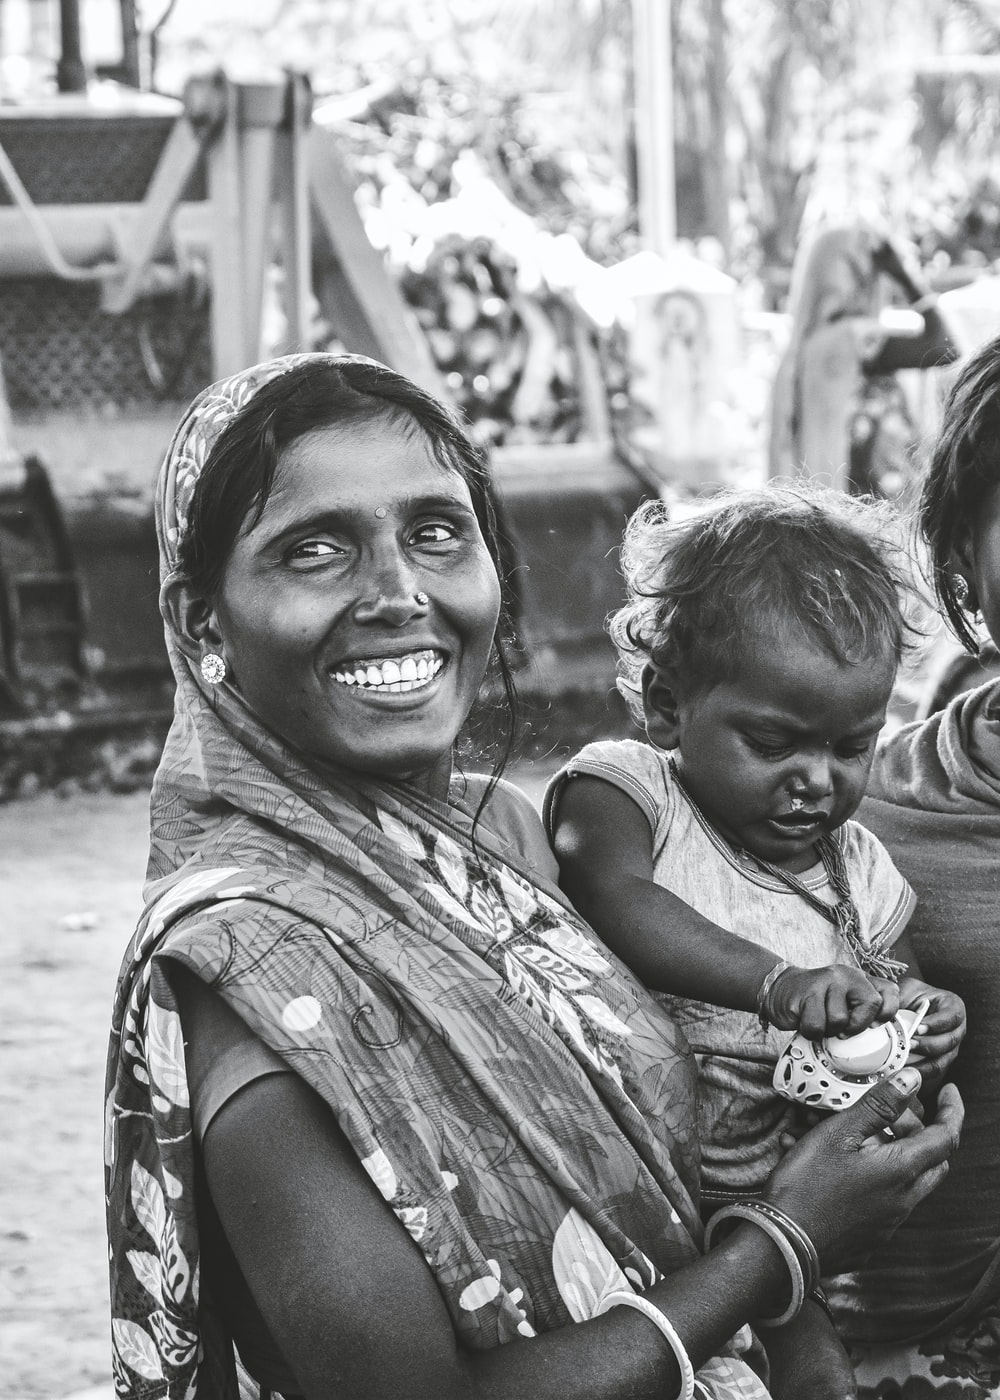 grayscale photo of woman carrying child